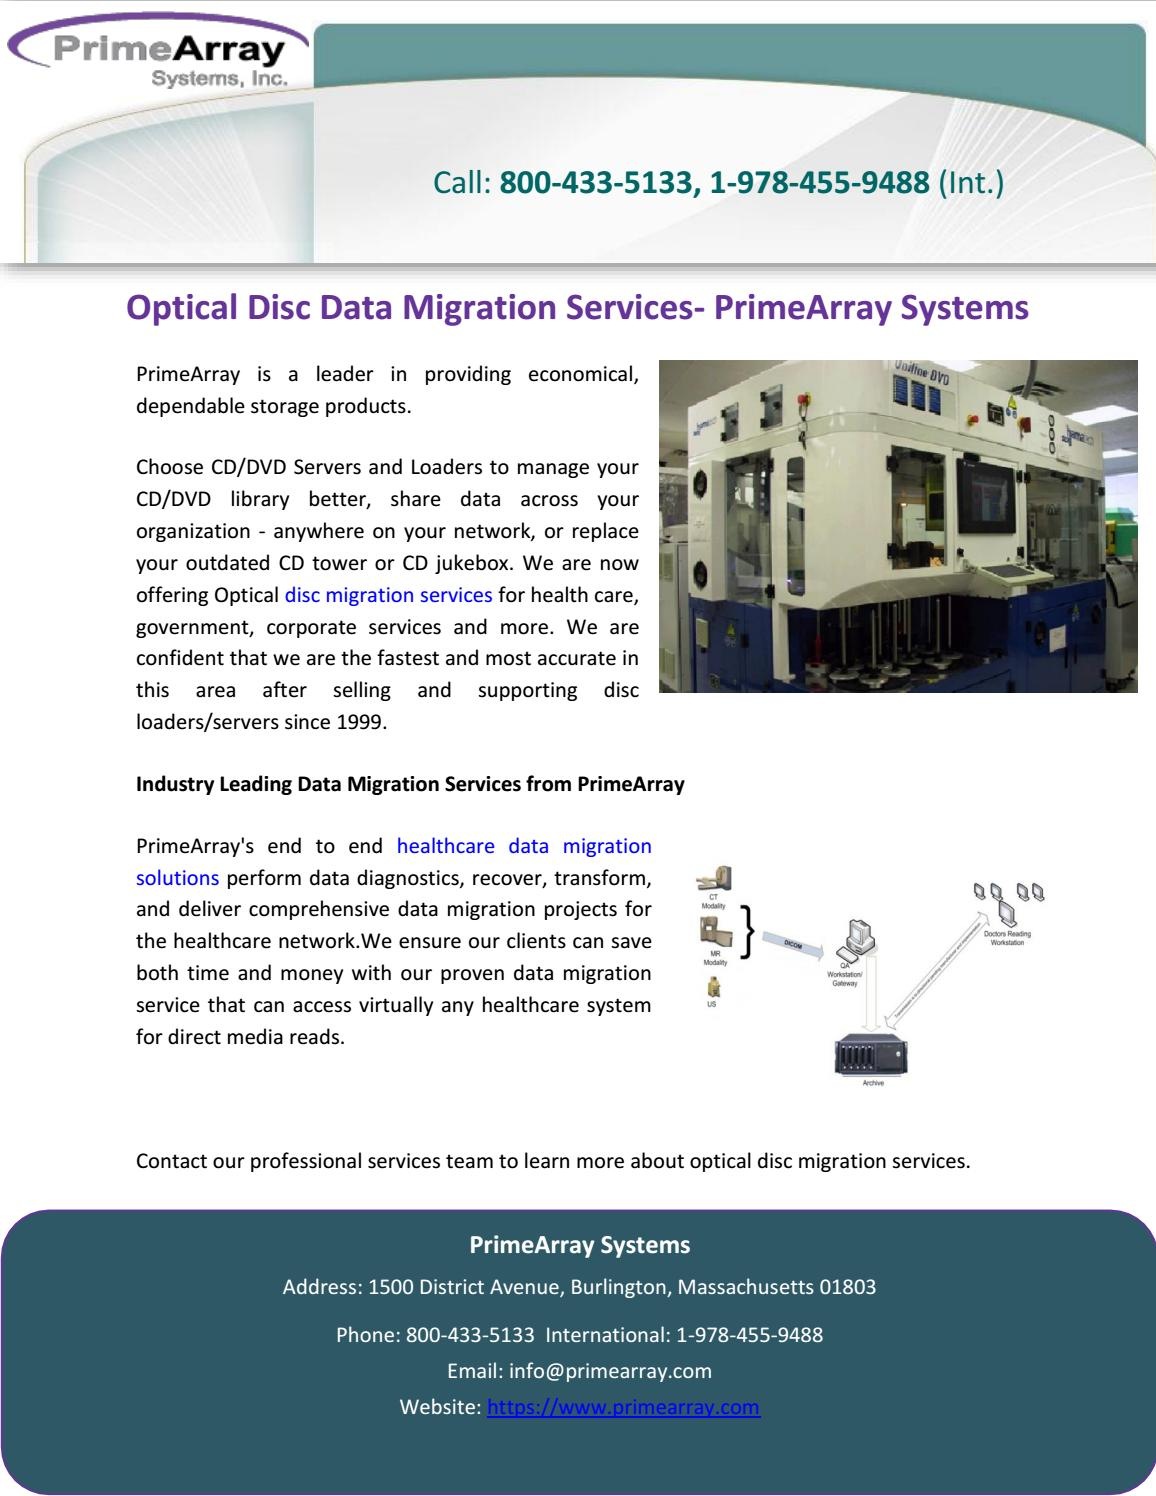 Optical Disc Data Migration Services- PrimeArray Systems by